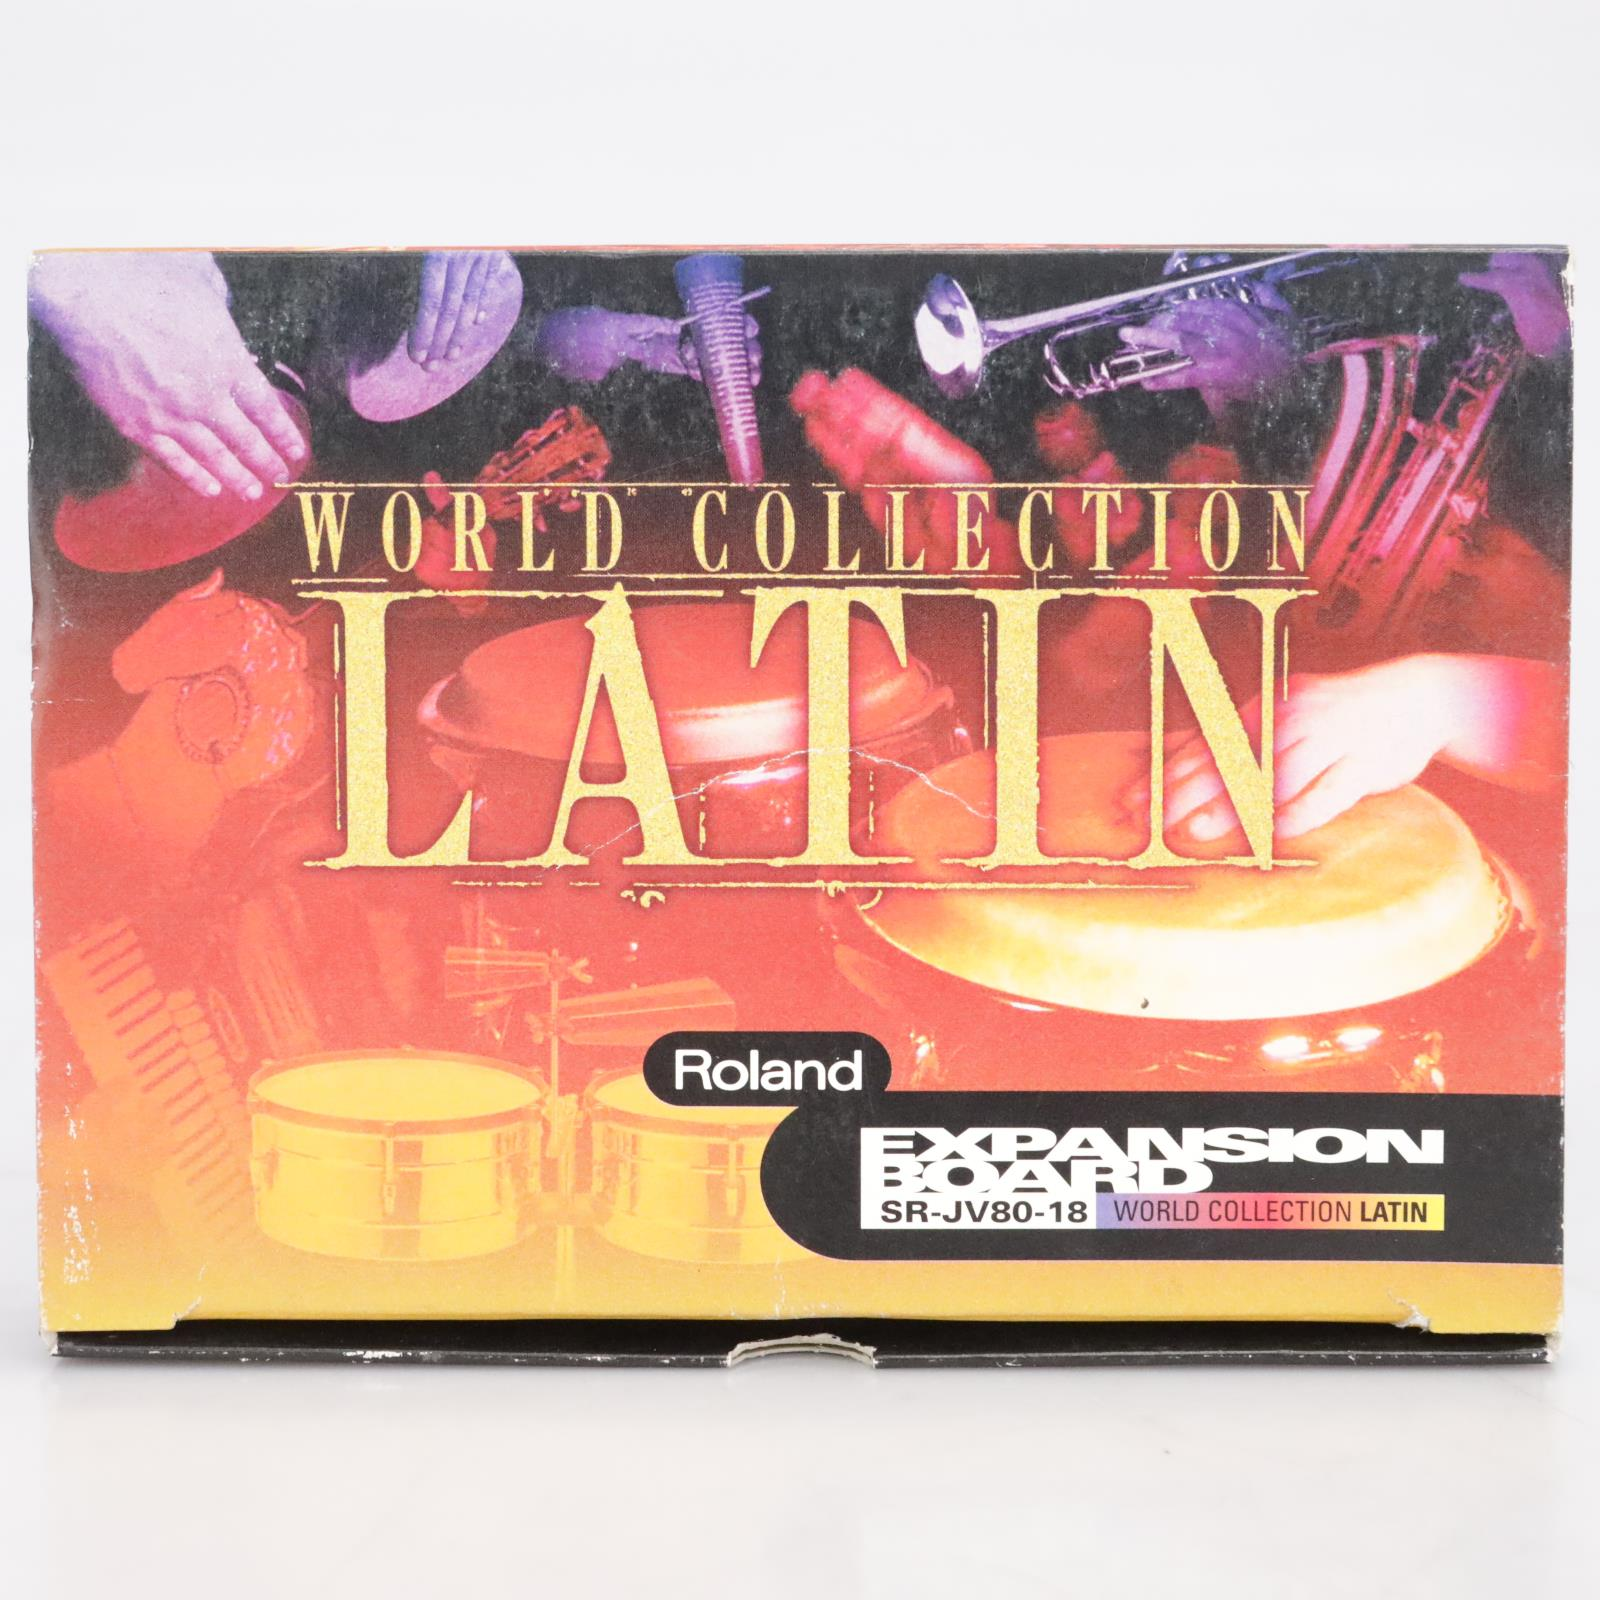 Roland World Collection Latin SR-JV80-18 Expansion Board #41666